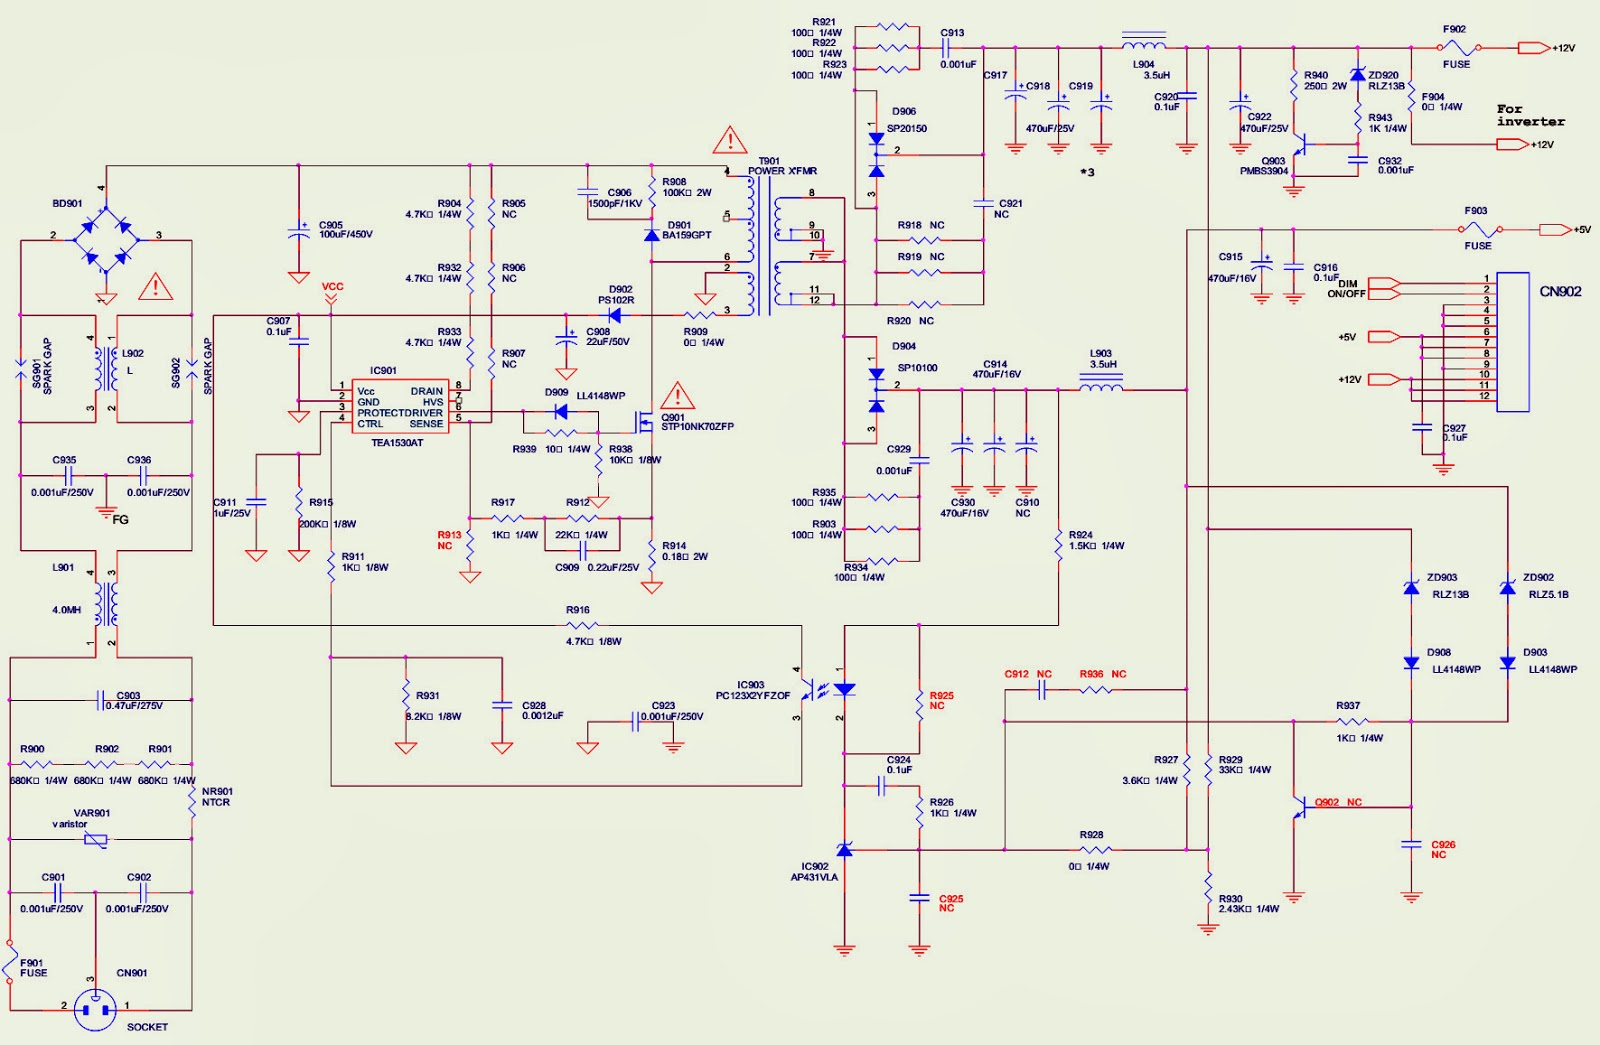 Aoc 212va Monitor Power Supply Schematic Circuit Diagram Icm Board Wiring Troubleshooting